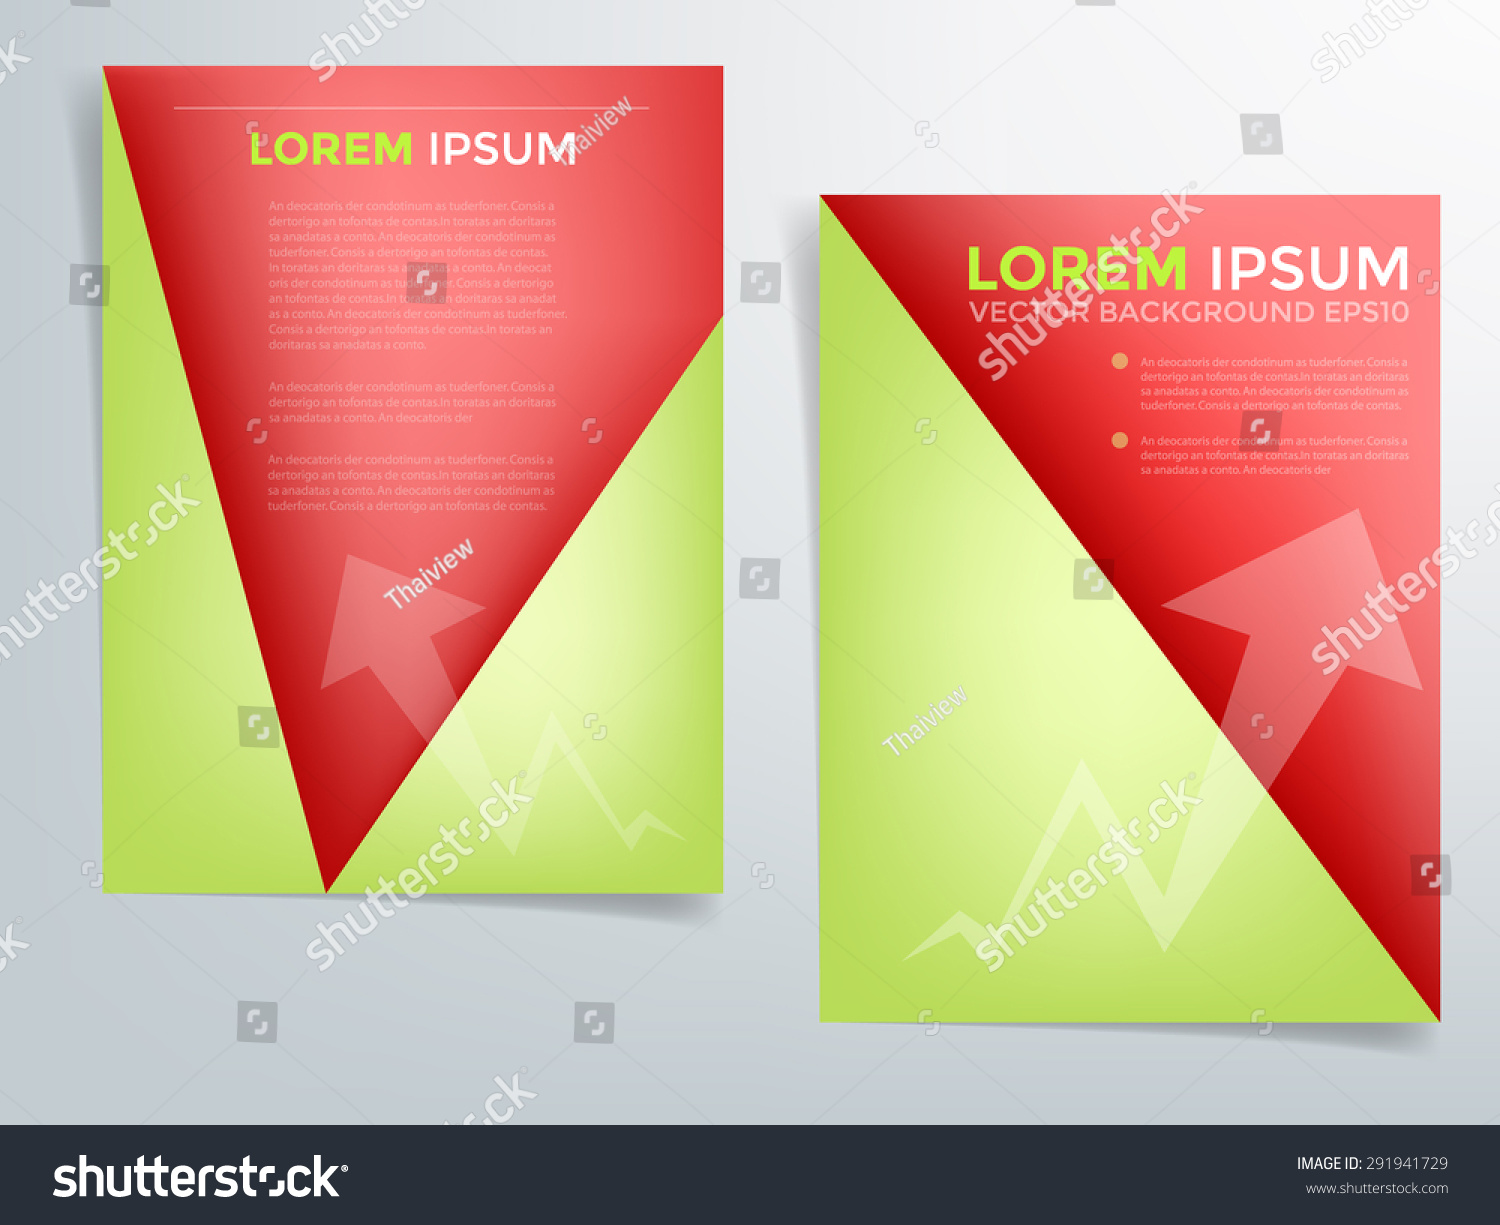 red brochure template - brochure template vector background flyer design stock